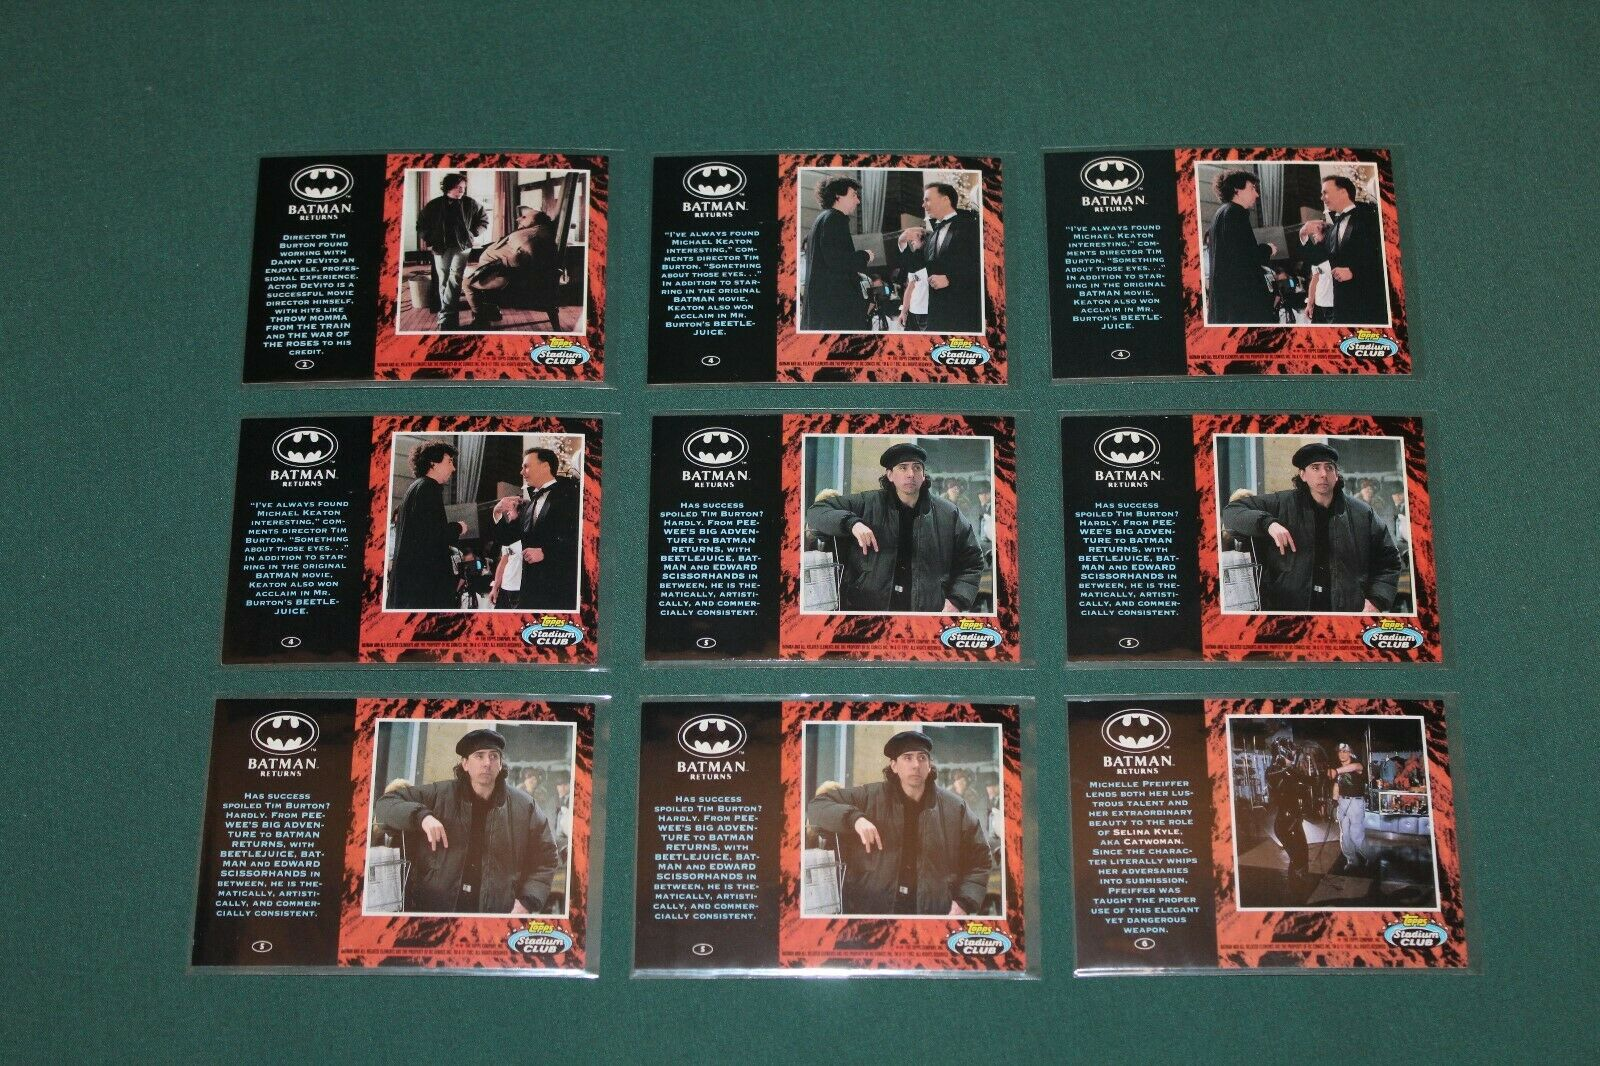 BATMAN RETURNS 1992 TOPPS STADIUM CLUB CARDS: 2,4,5,6,7,10,12,13,14,15,16,17,20 Без бренда NONE - фотография #5